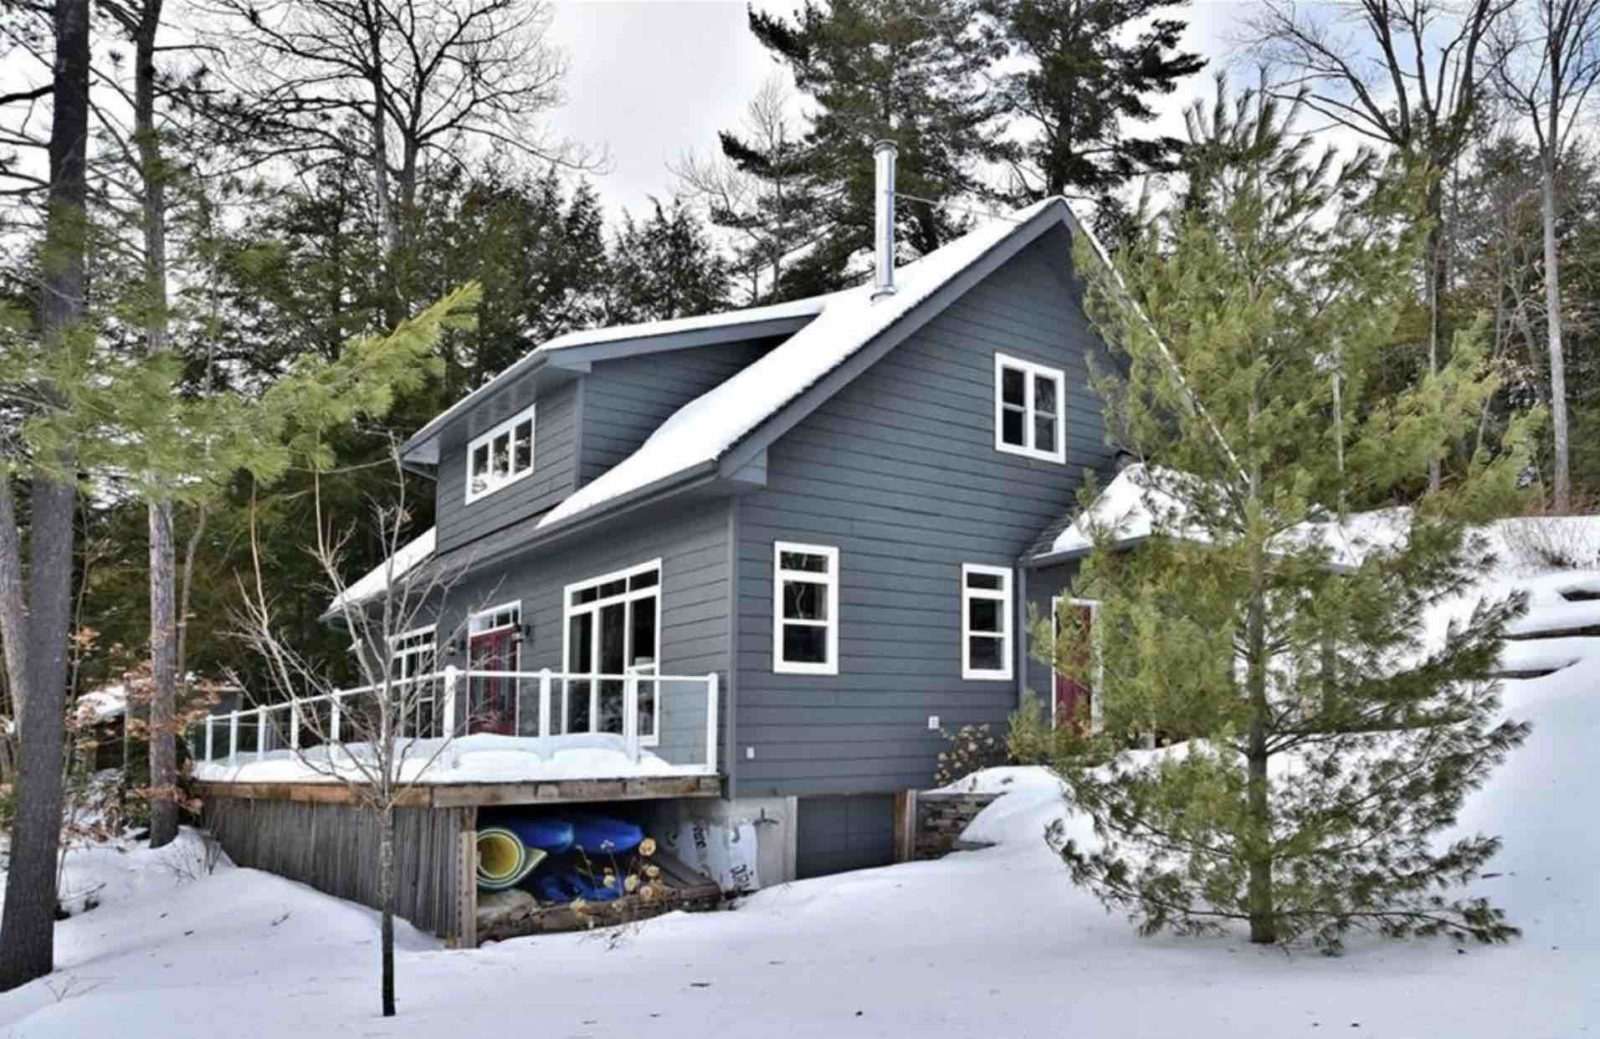 Exterior view of Kennisis Lake cottage in winter and snow